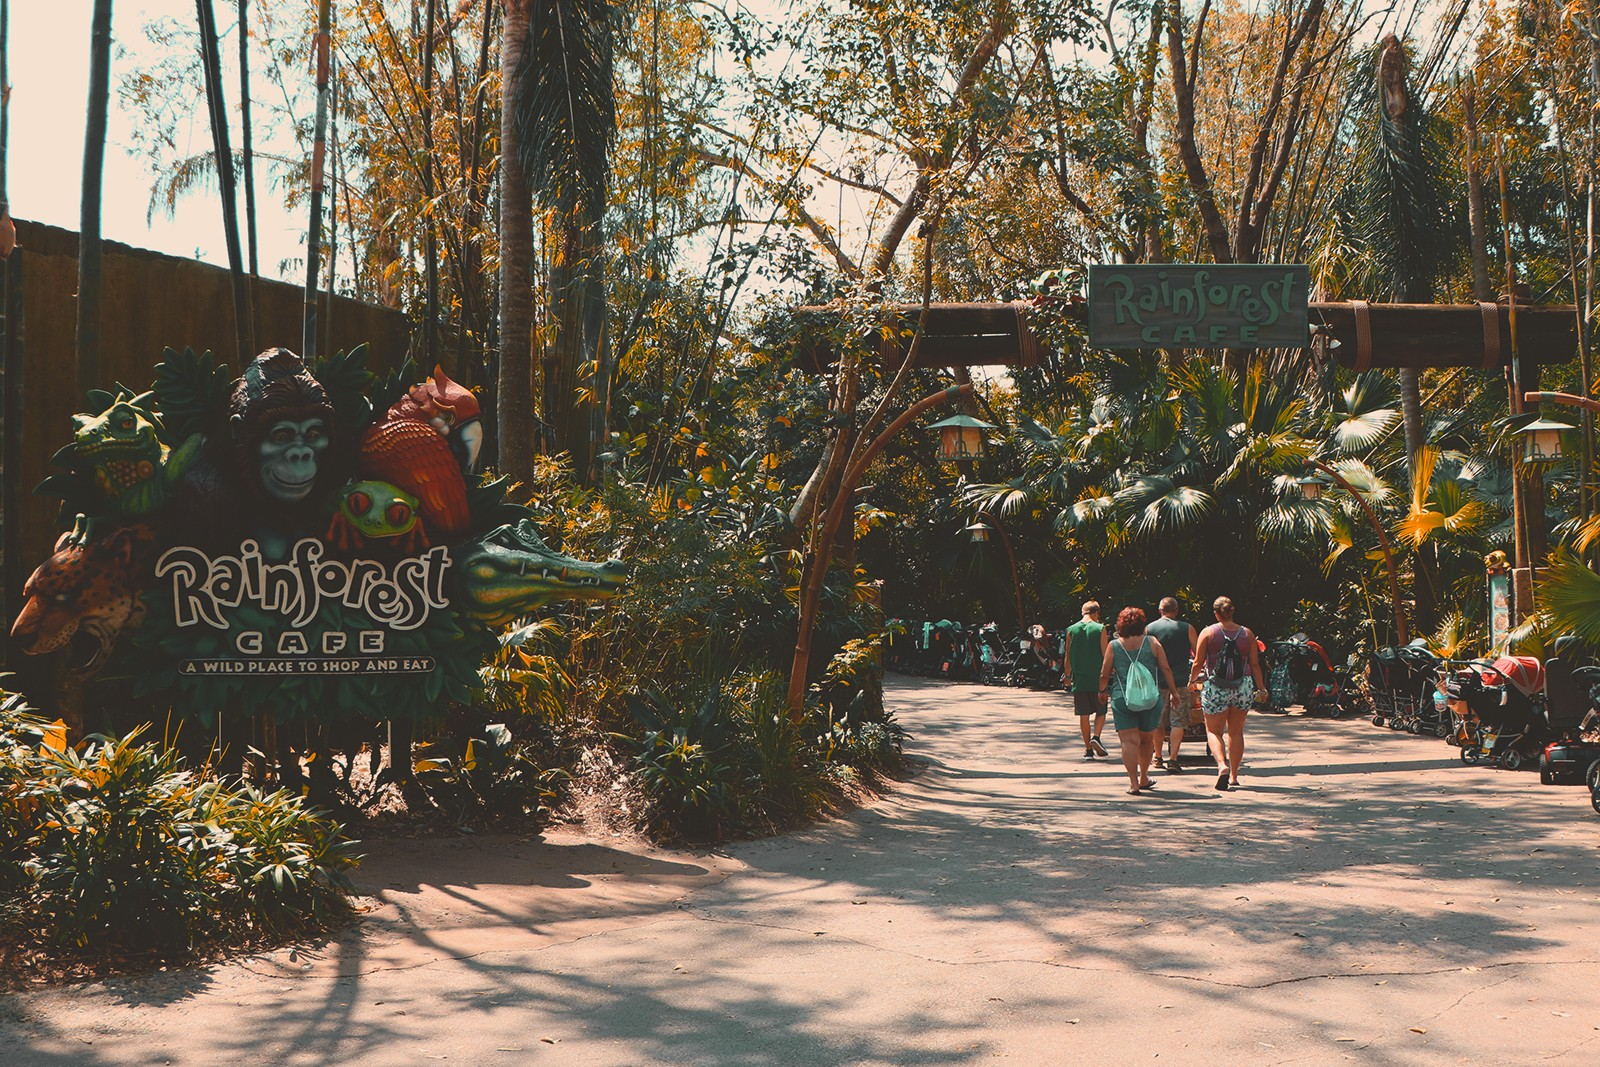 entrada restaurante rainforest cafe